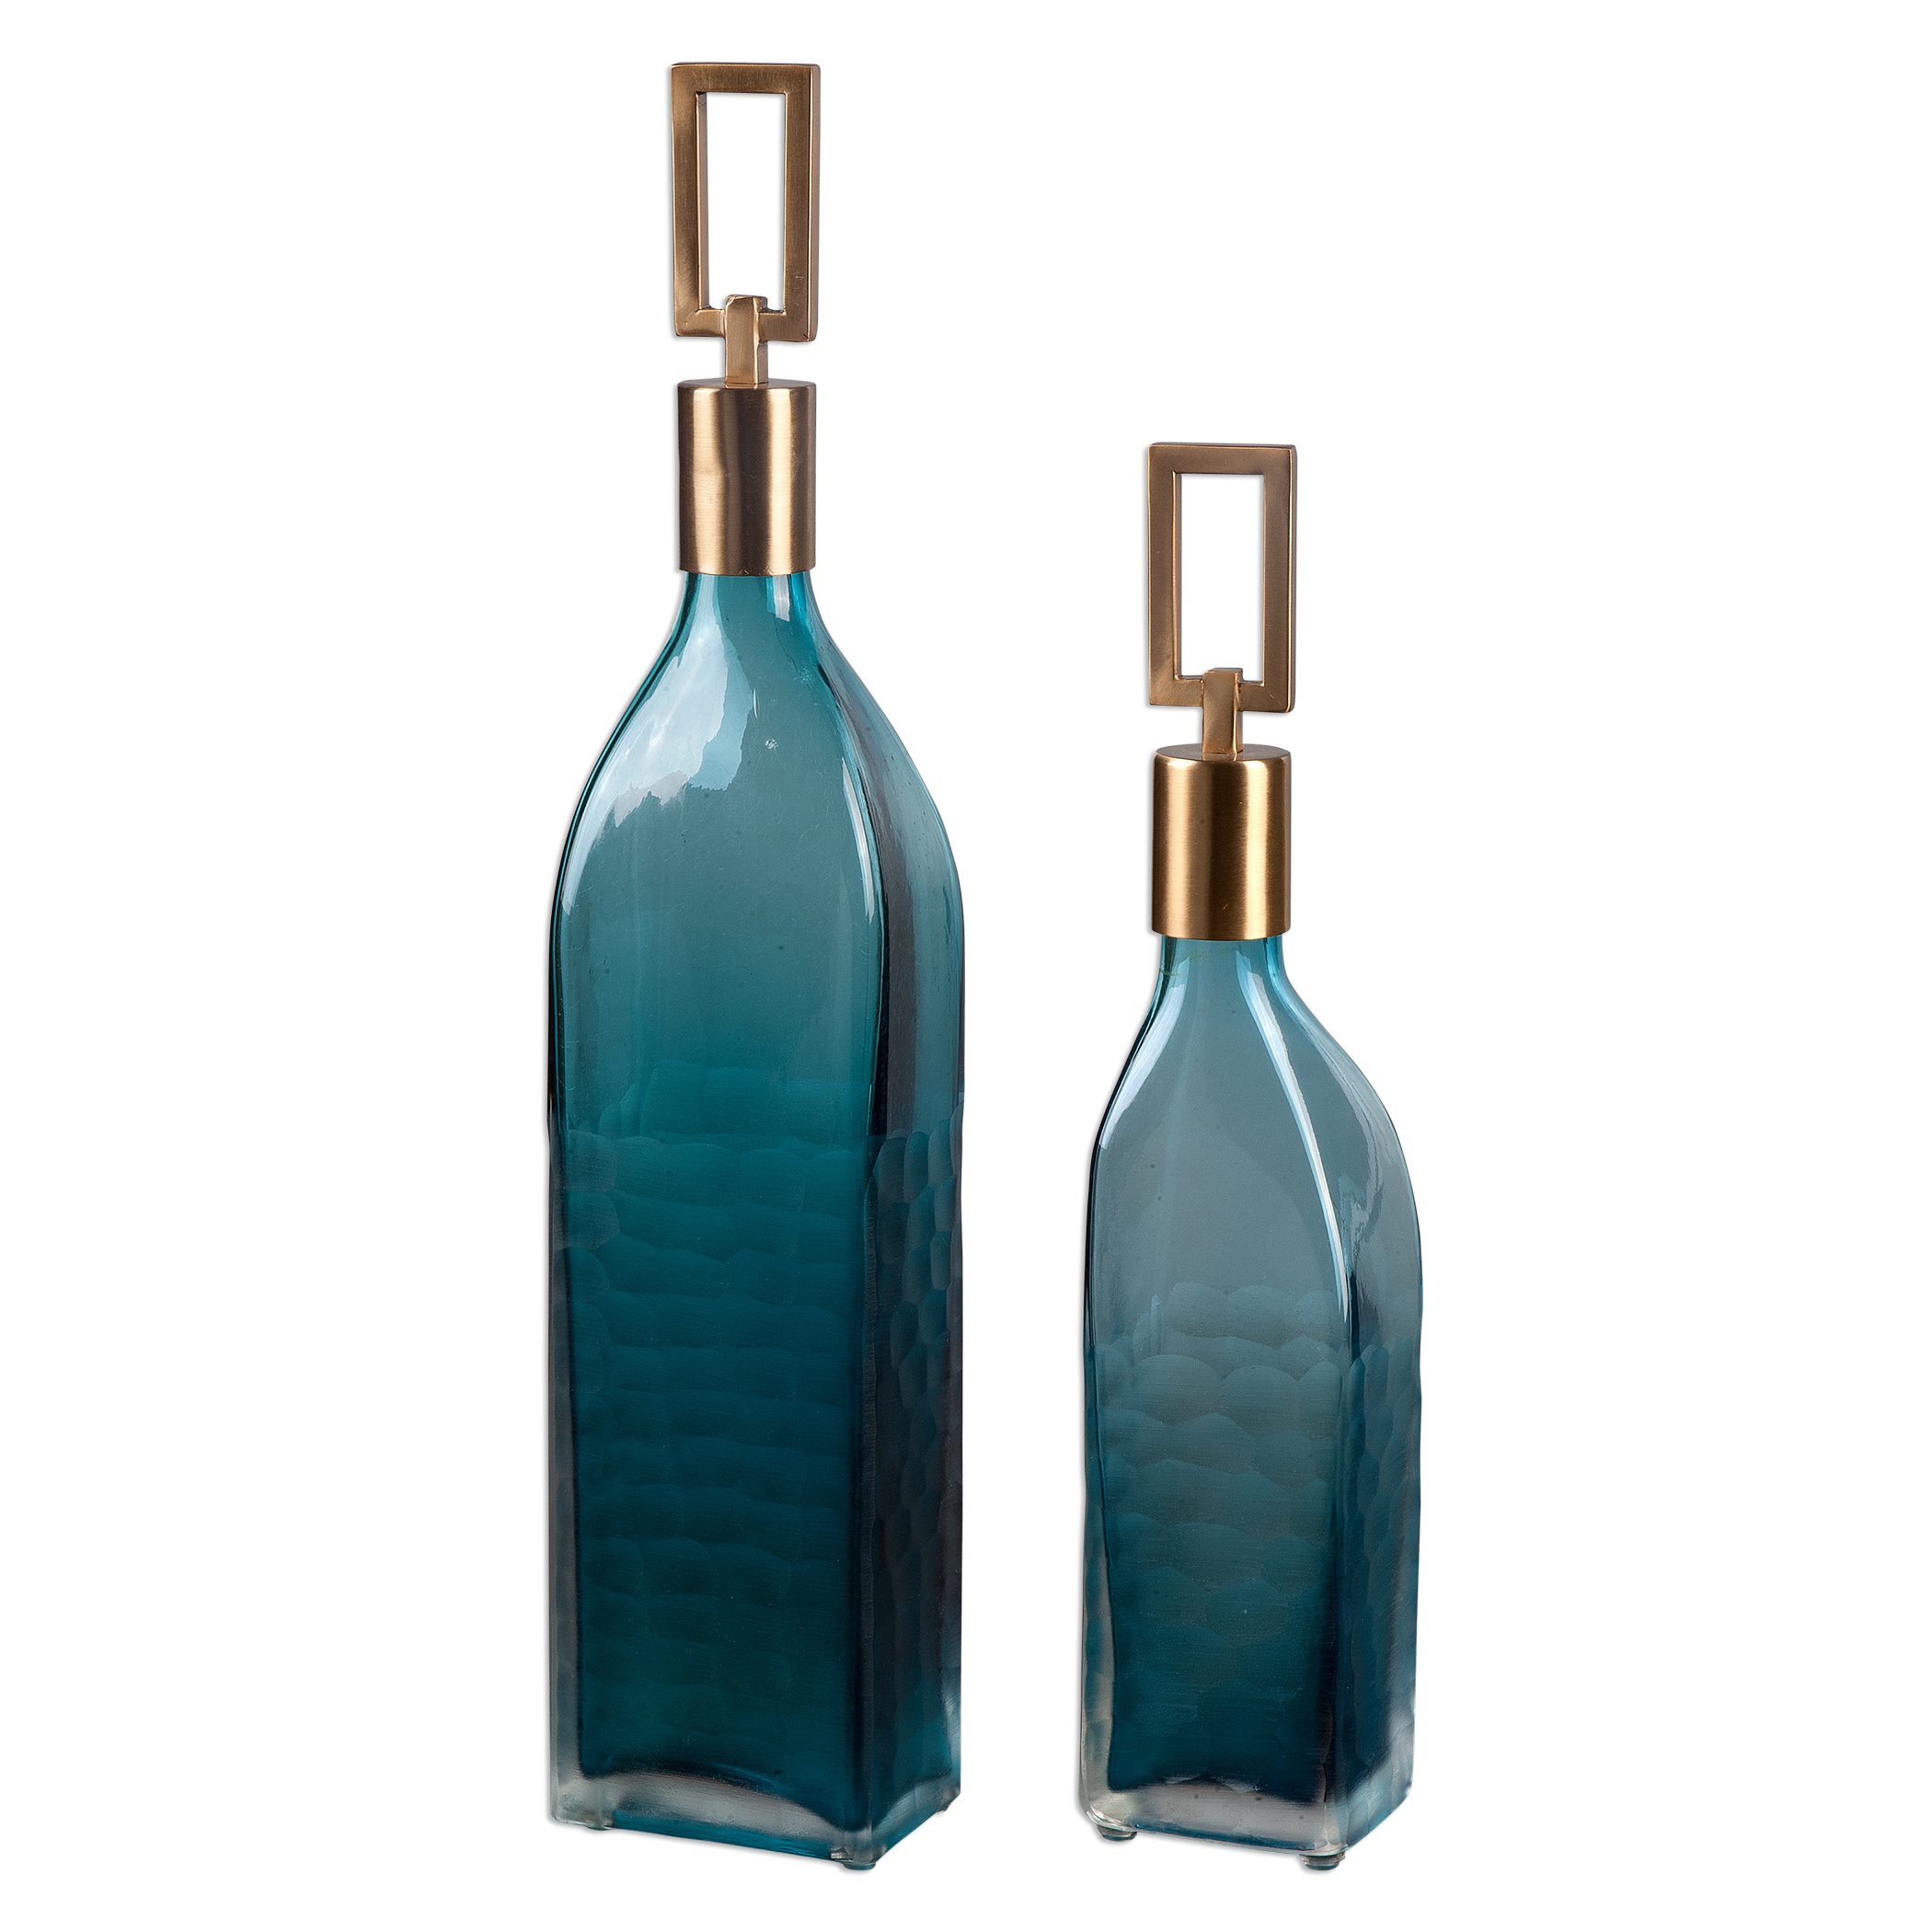 Accessories - Vases and Urns Annabella Teal Glass Bottles, S/2 by Uttermost at Mueller Furniture